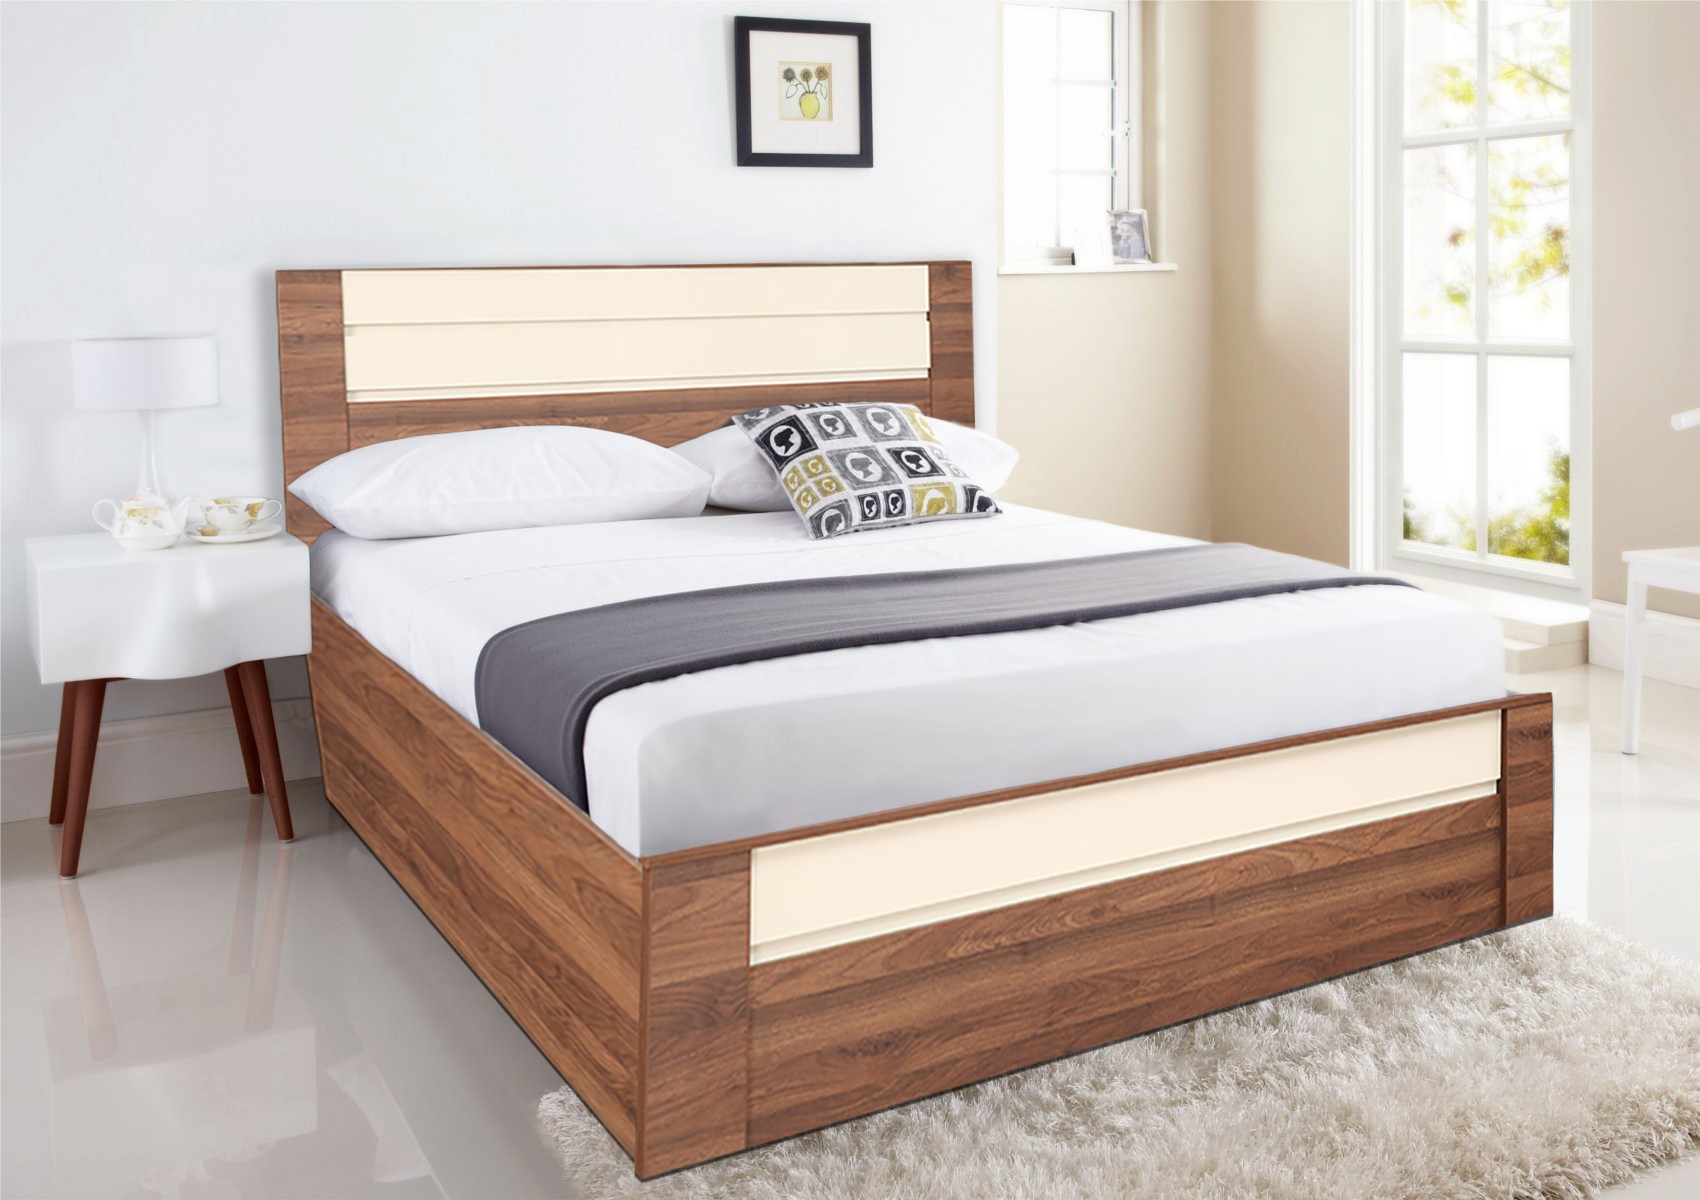 Ambrosia Engineered Wood Hydraulic Storage Queen Size Bed in Wallnut & Off White Colour by HomeTown